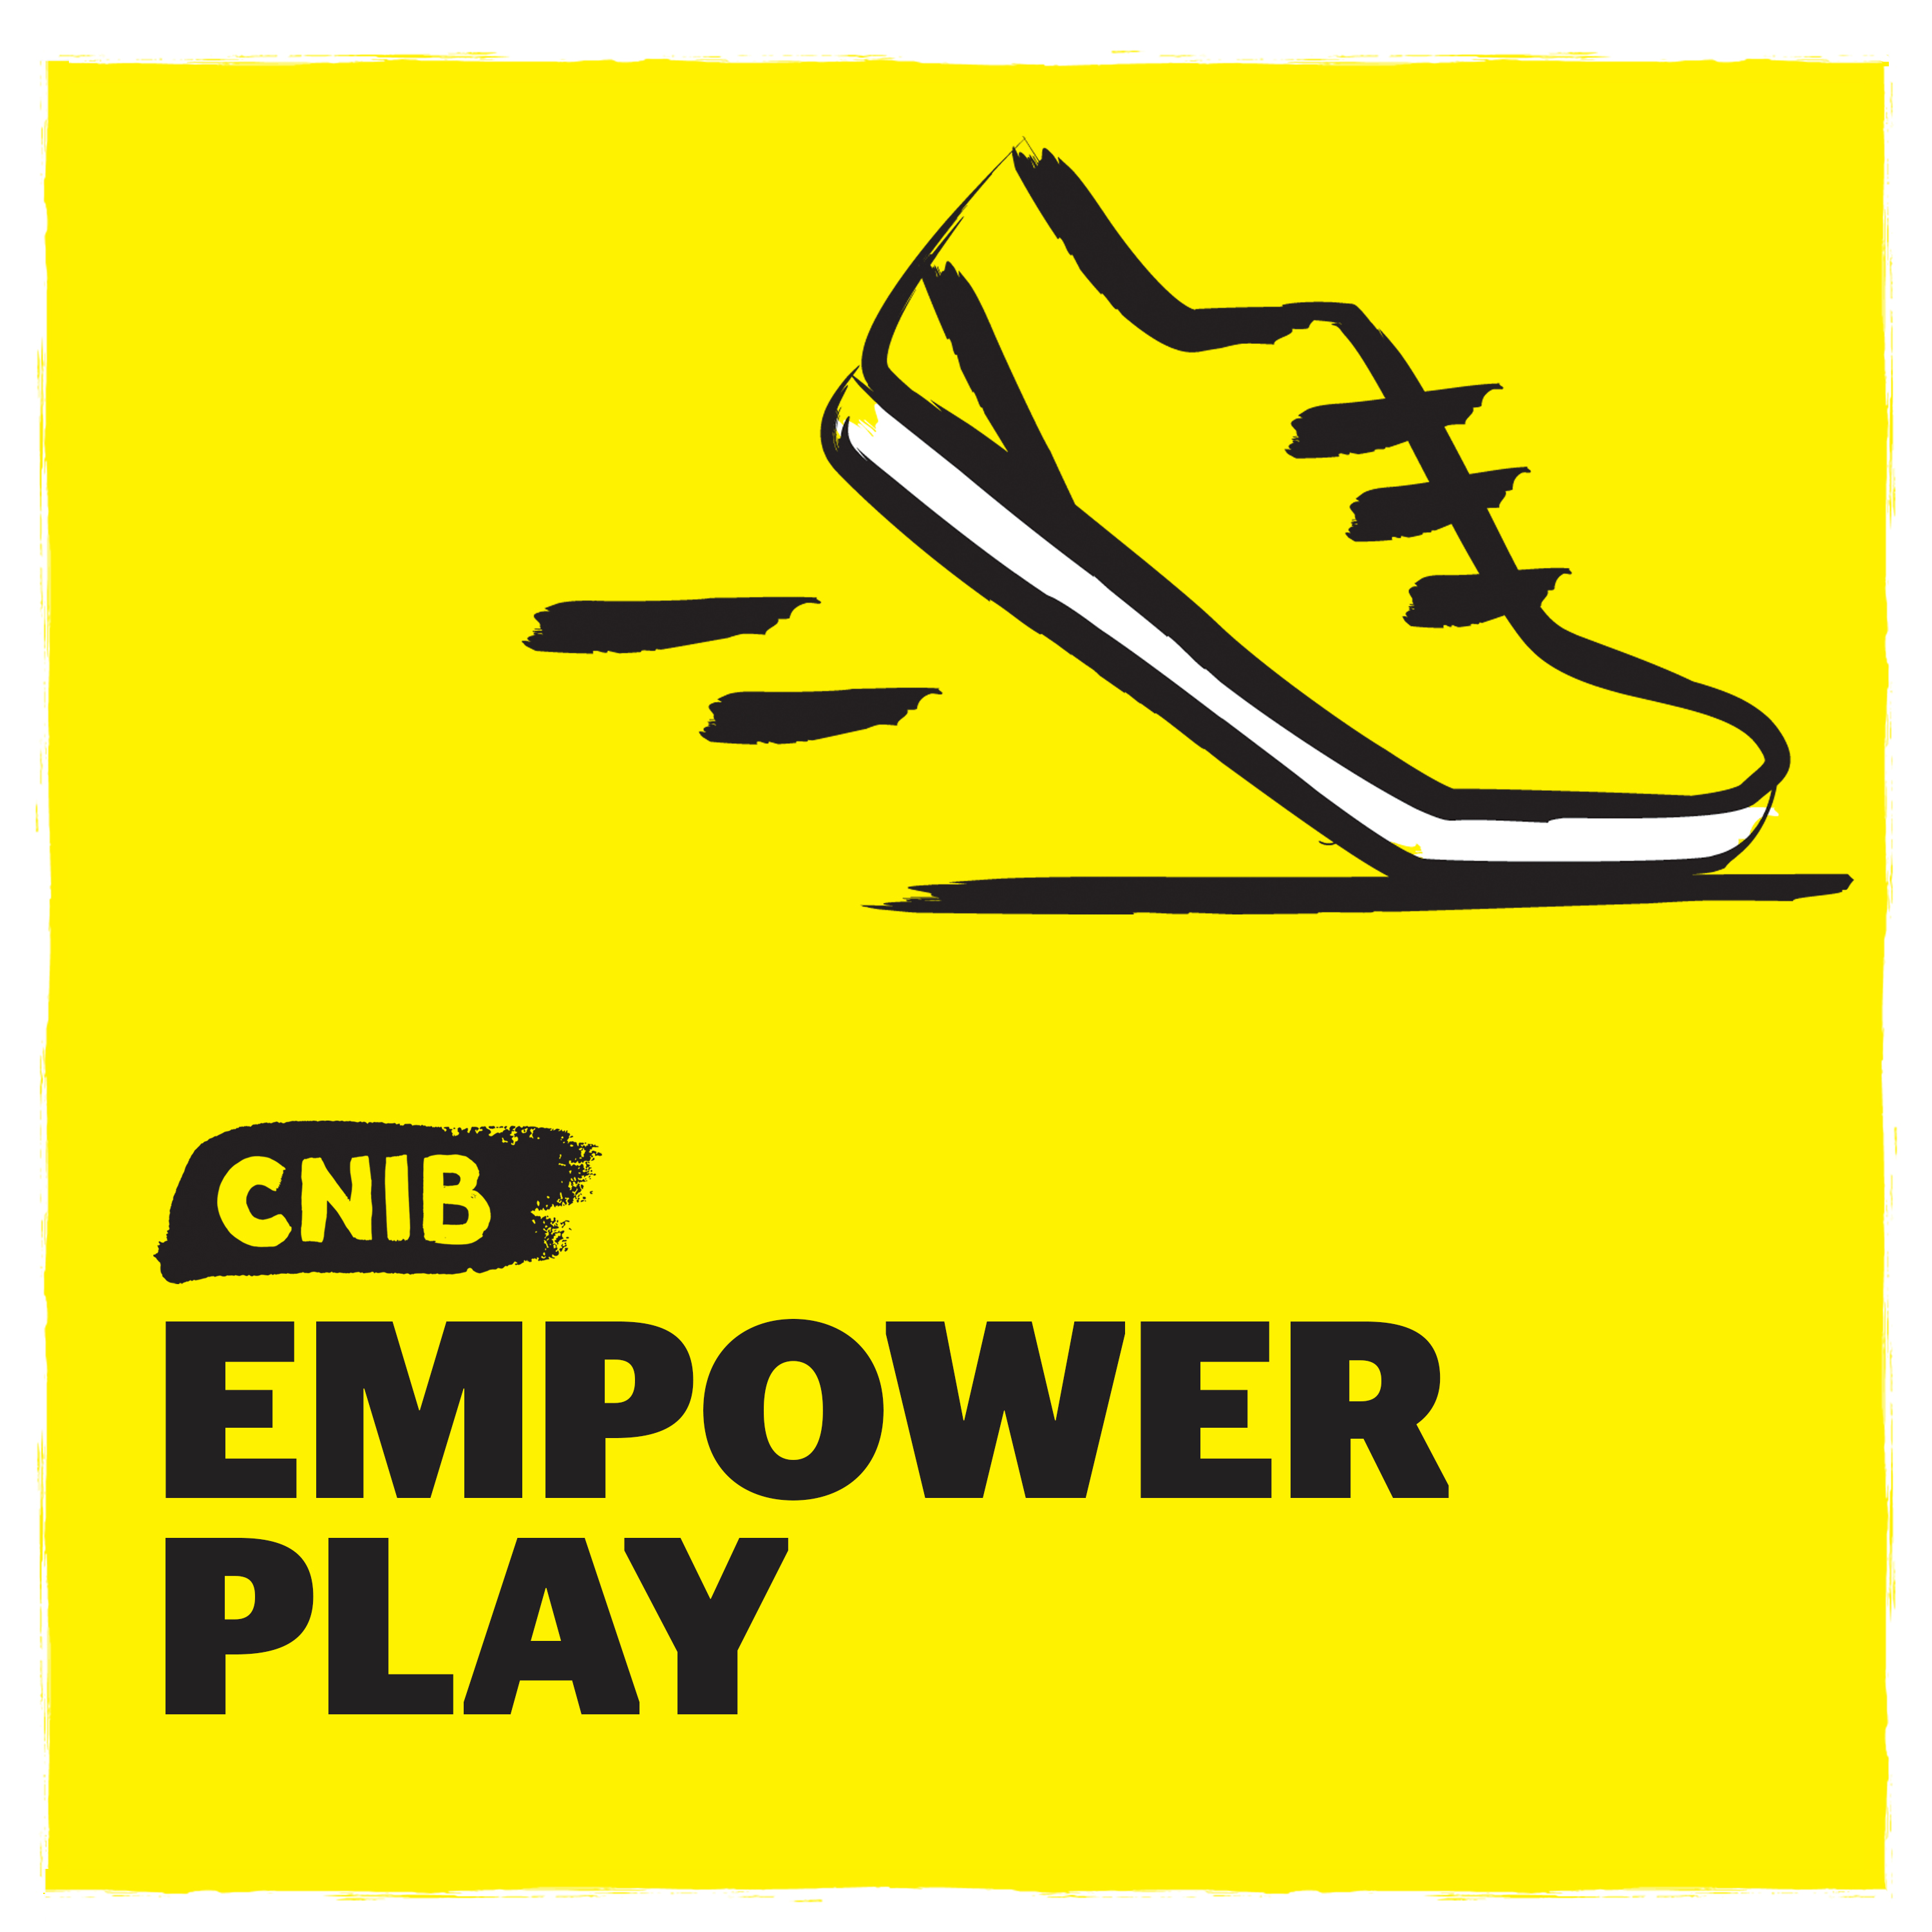 CNIB EmpowerPlay logo. An illustration of a running shoe on a yellow background.